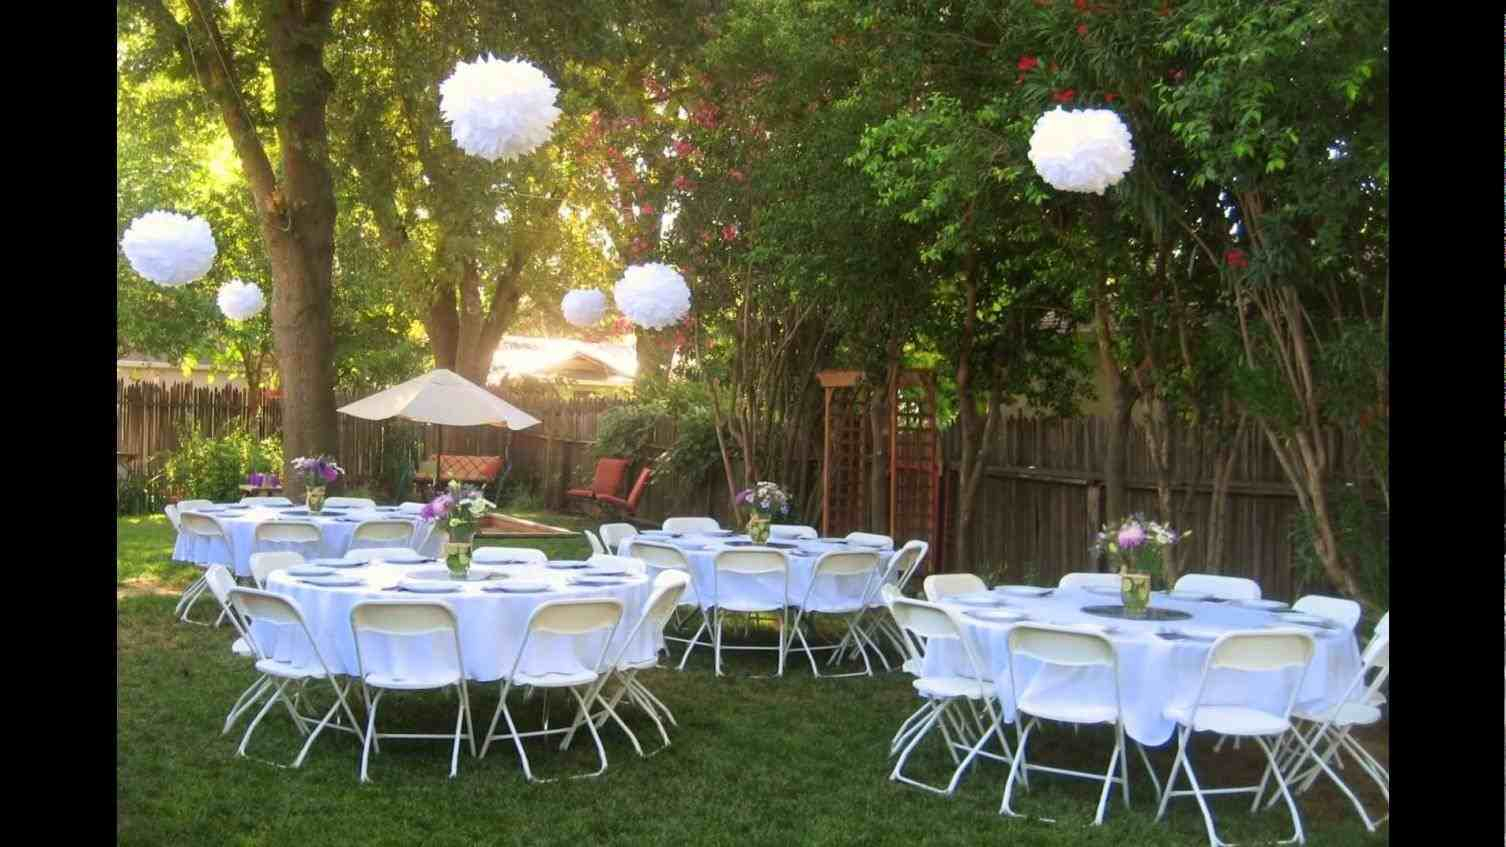 Backyard Bbq Backyard Frontyard Landscape Fence regarding Backyard Bbq Wedding Ideas On A Budget